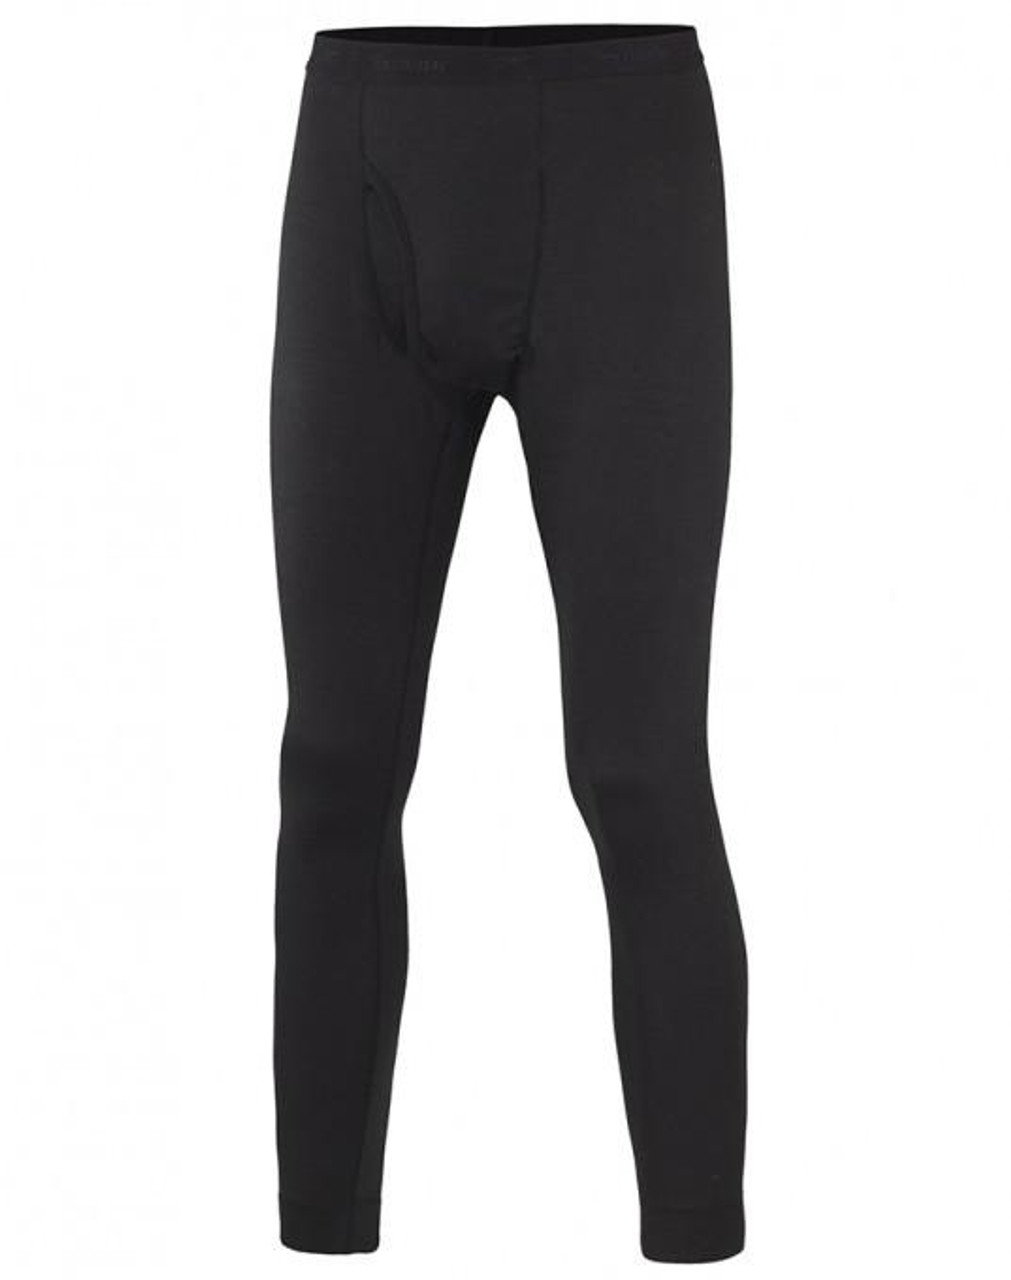 Terramar Men's 2-Layer Authentic Thermal Bottom